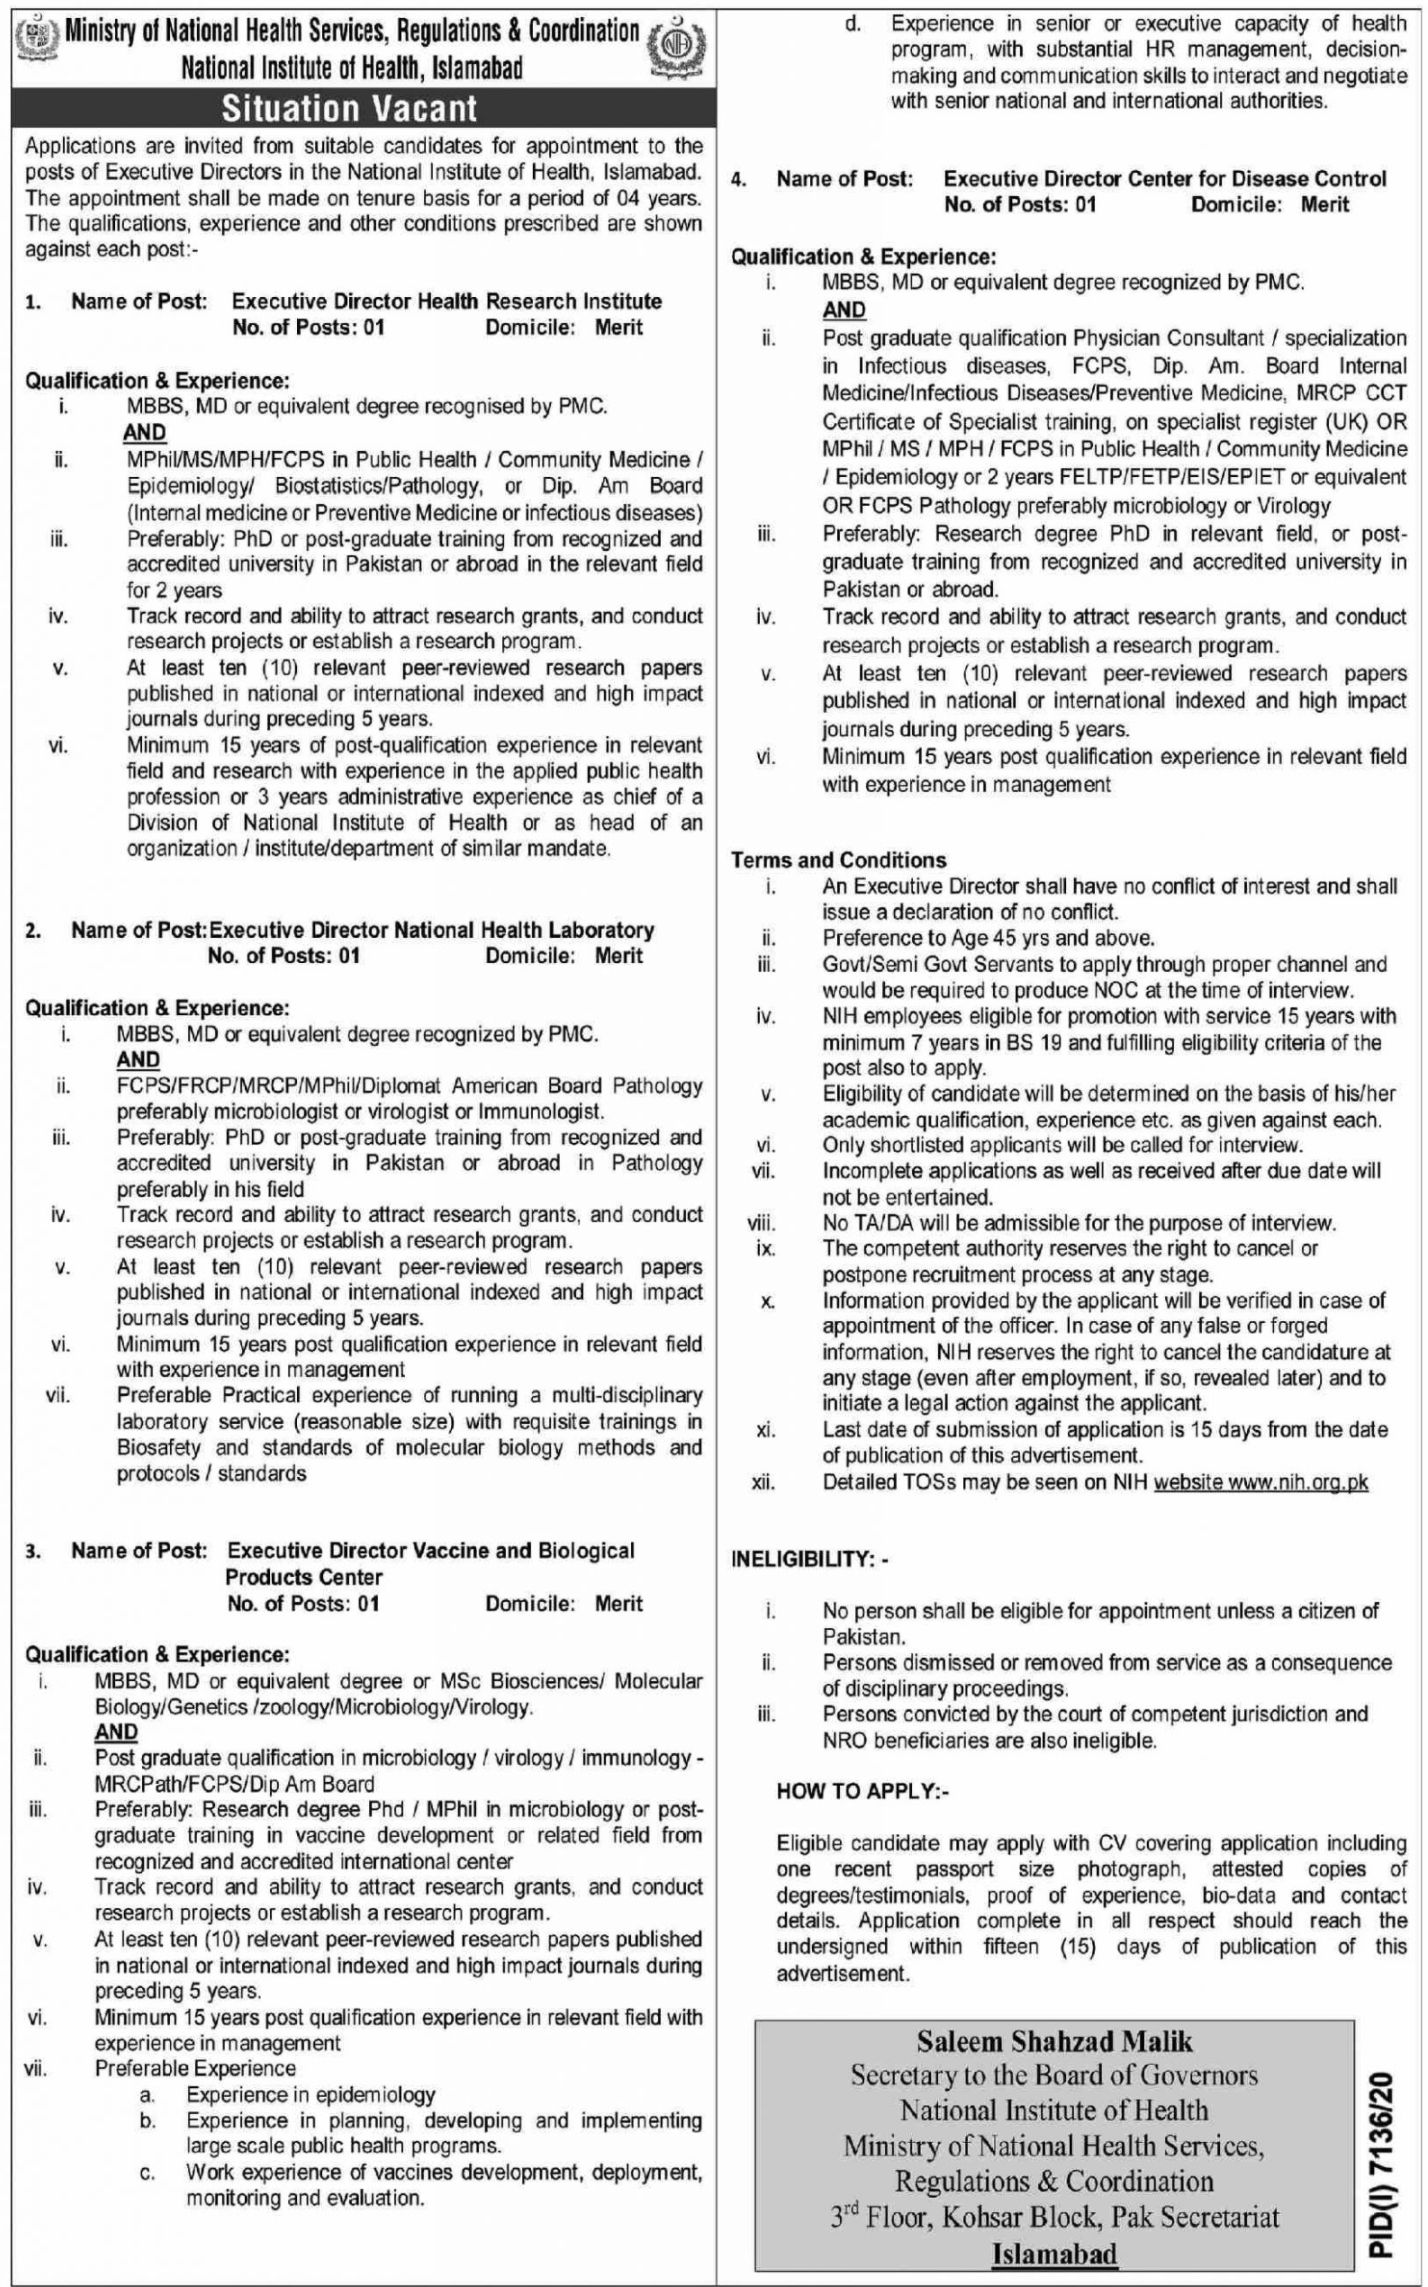 Ministry of National Health Services, Regulations & Coordination Vacancies 2021 3